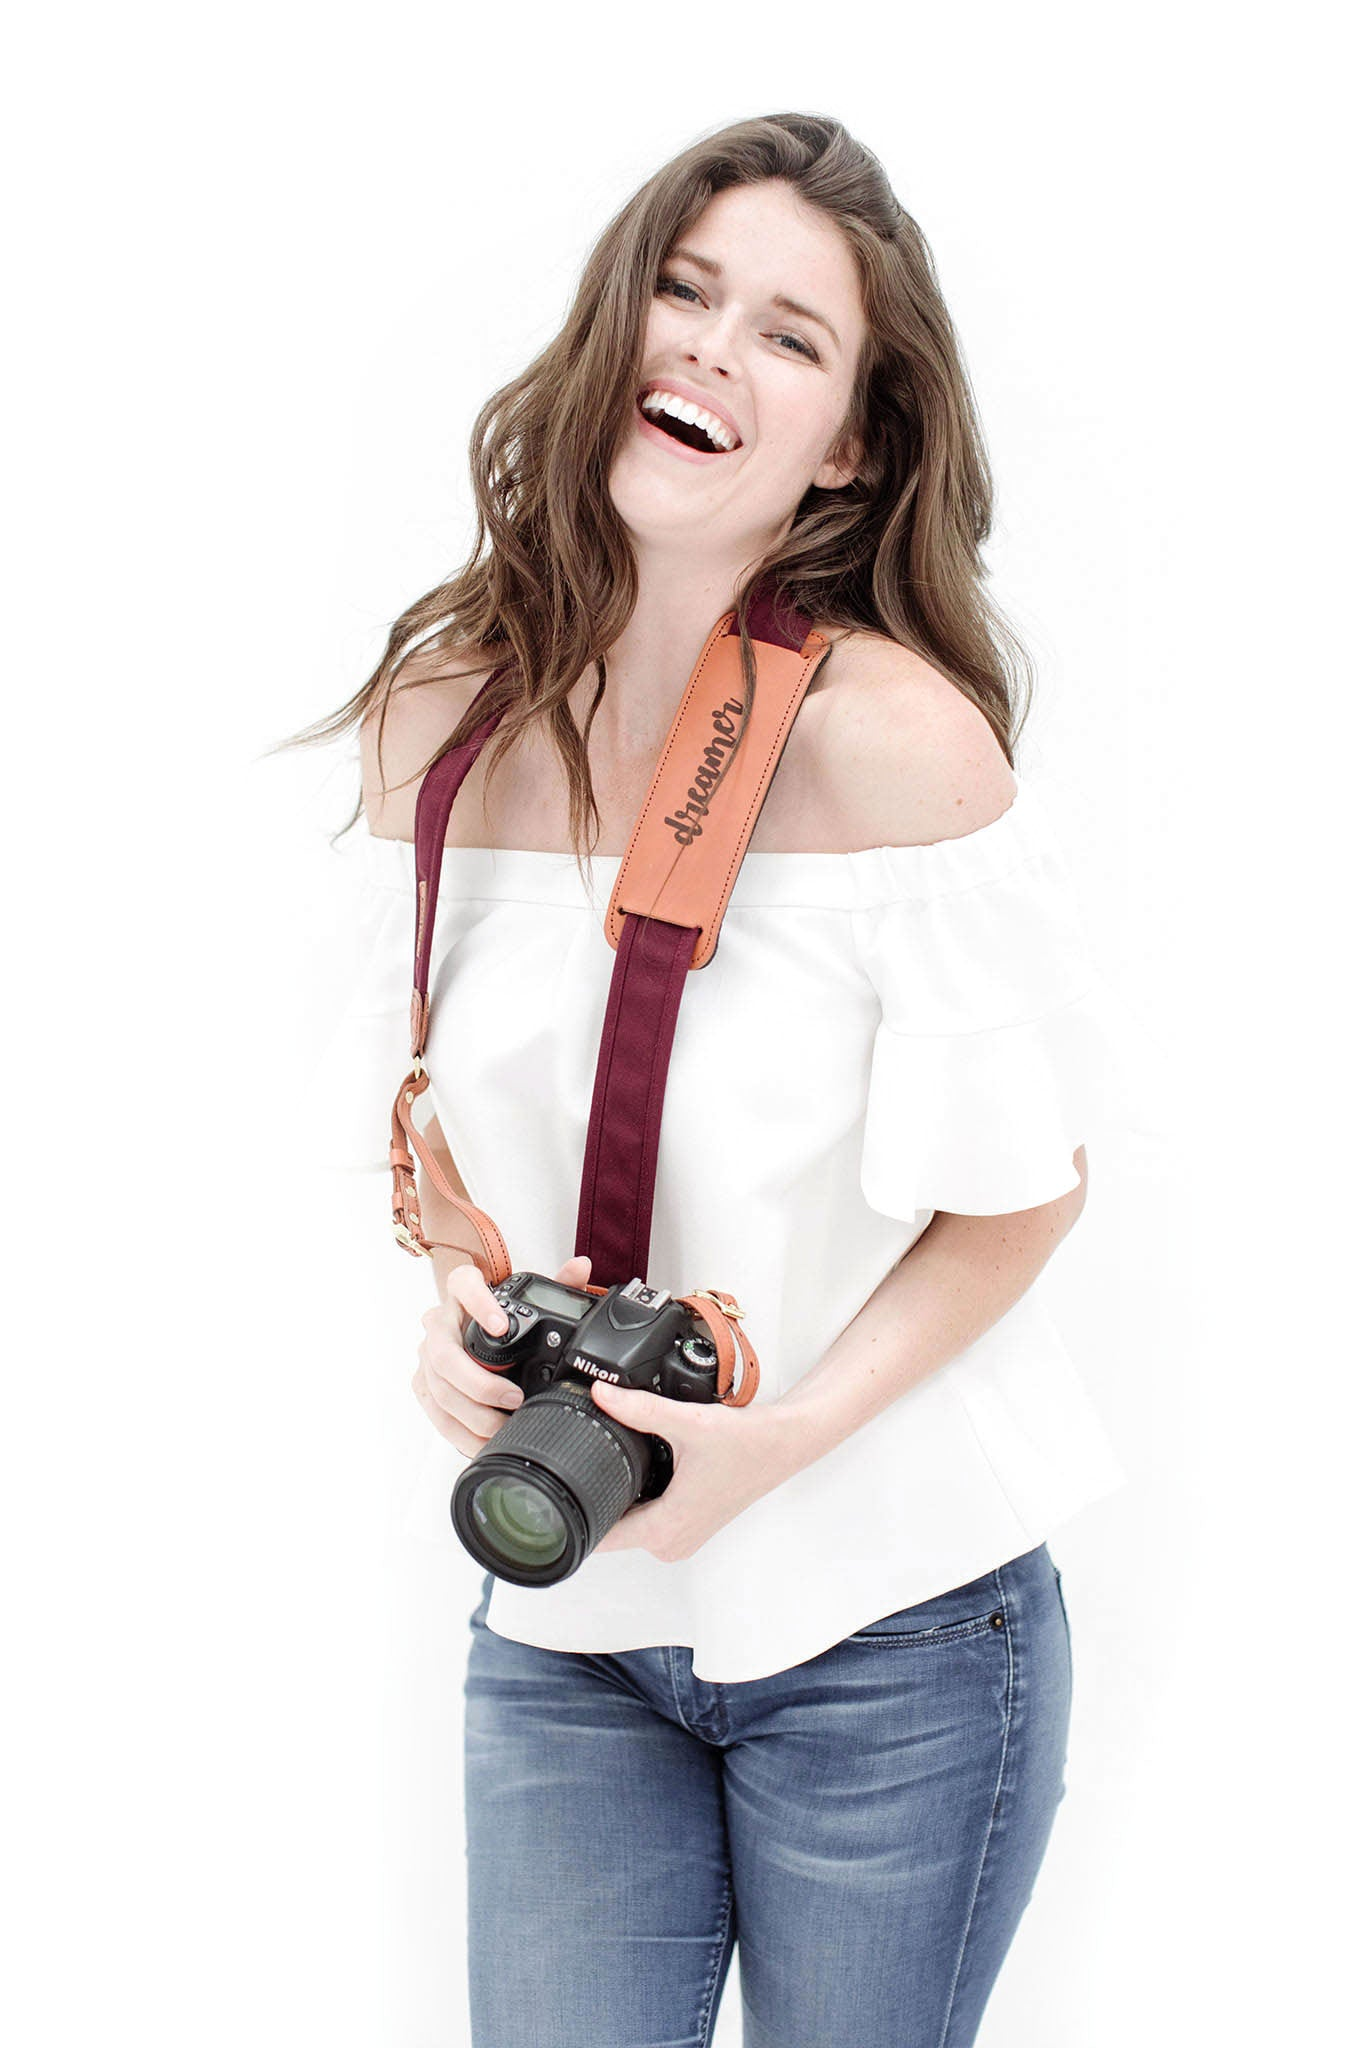 FOTO | Merlot Fotostrap for her - a burgundy canvas and genuine leather camera strap that can be personalized with a monogram or business logo, making it the perfect personalized gift!